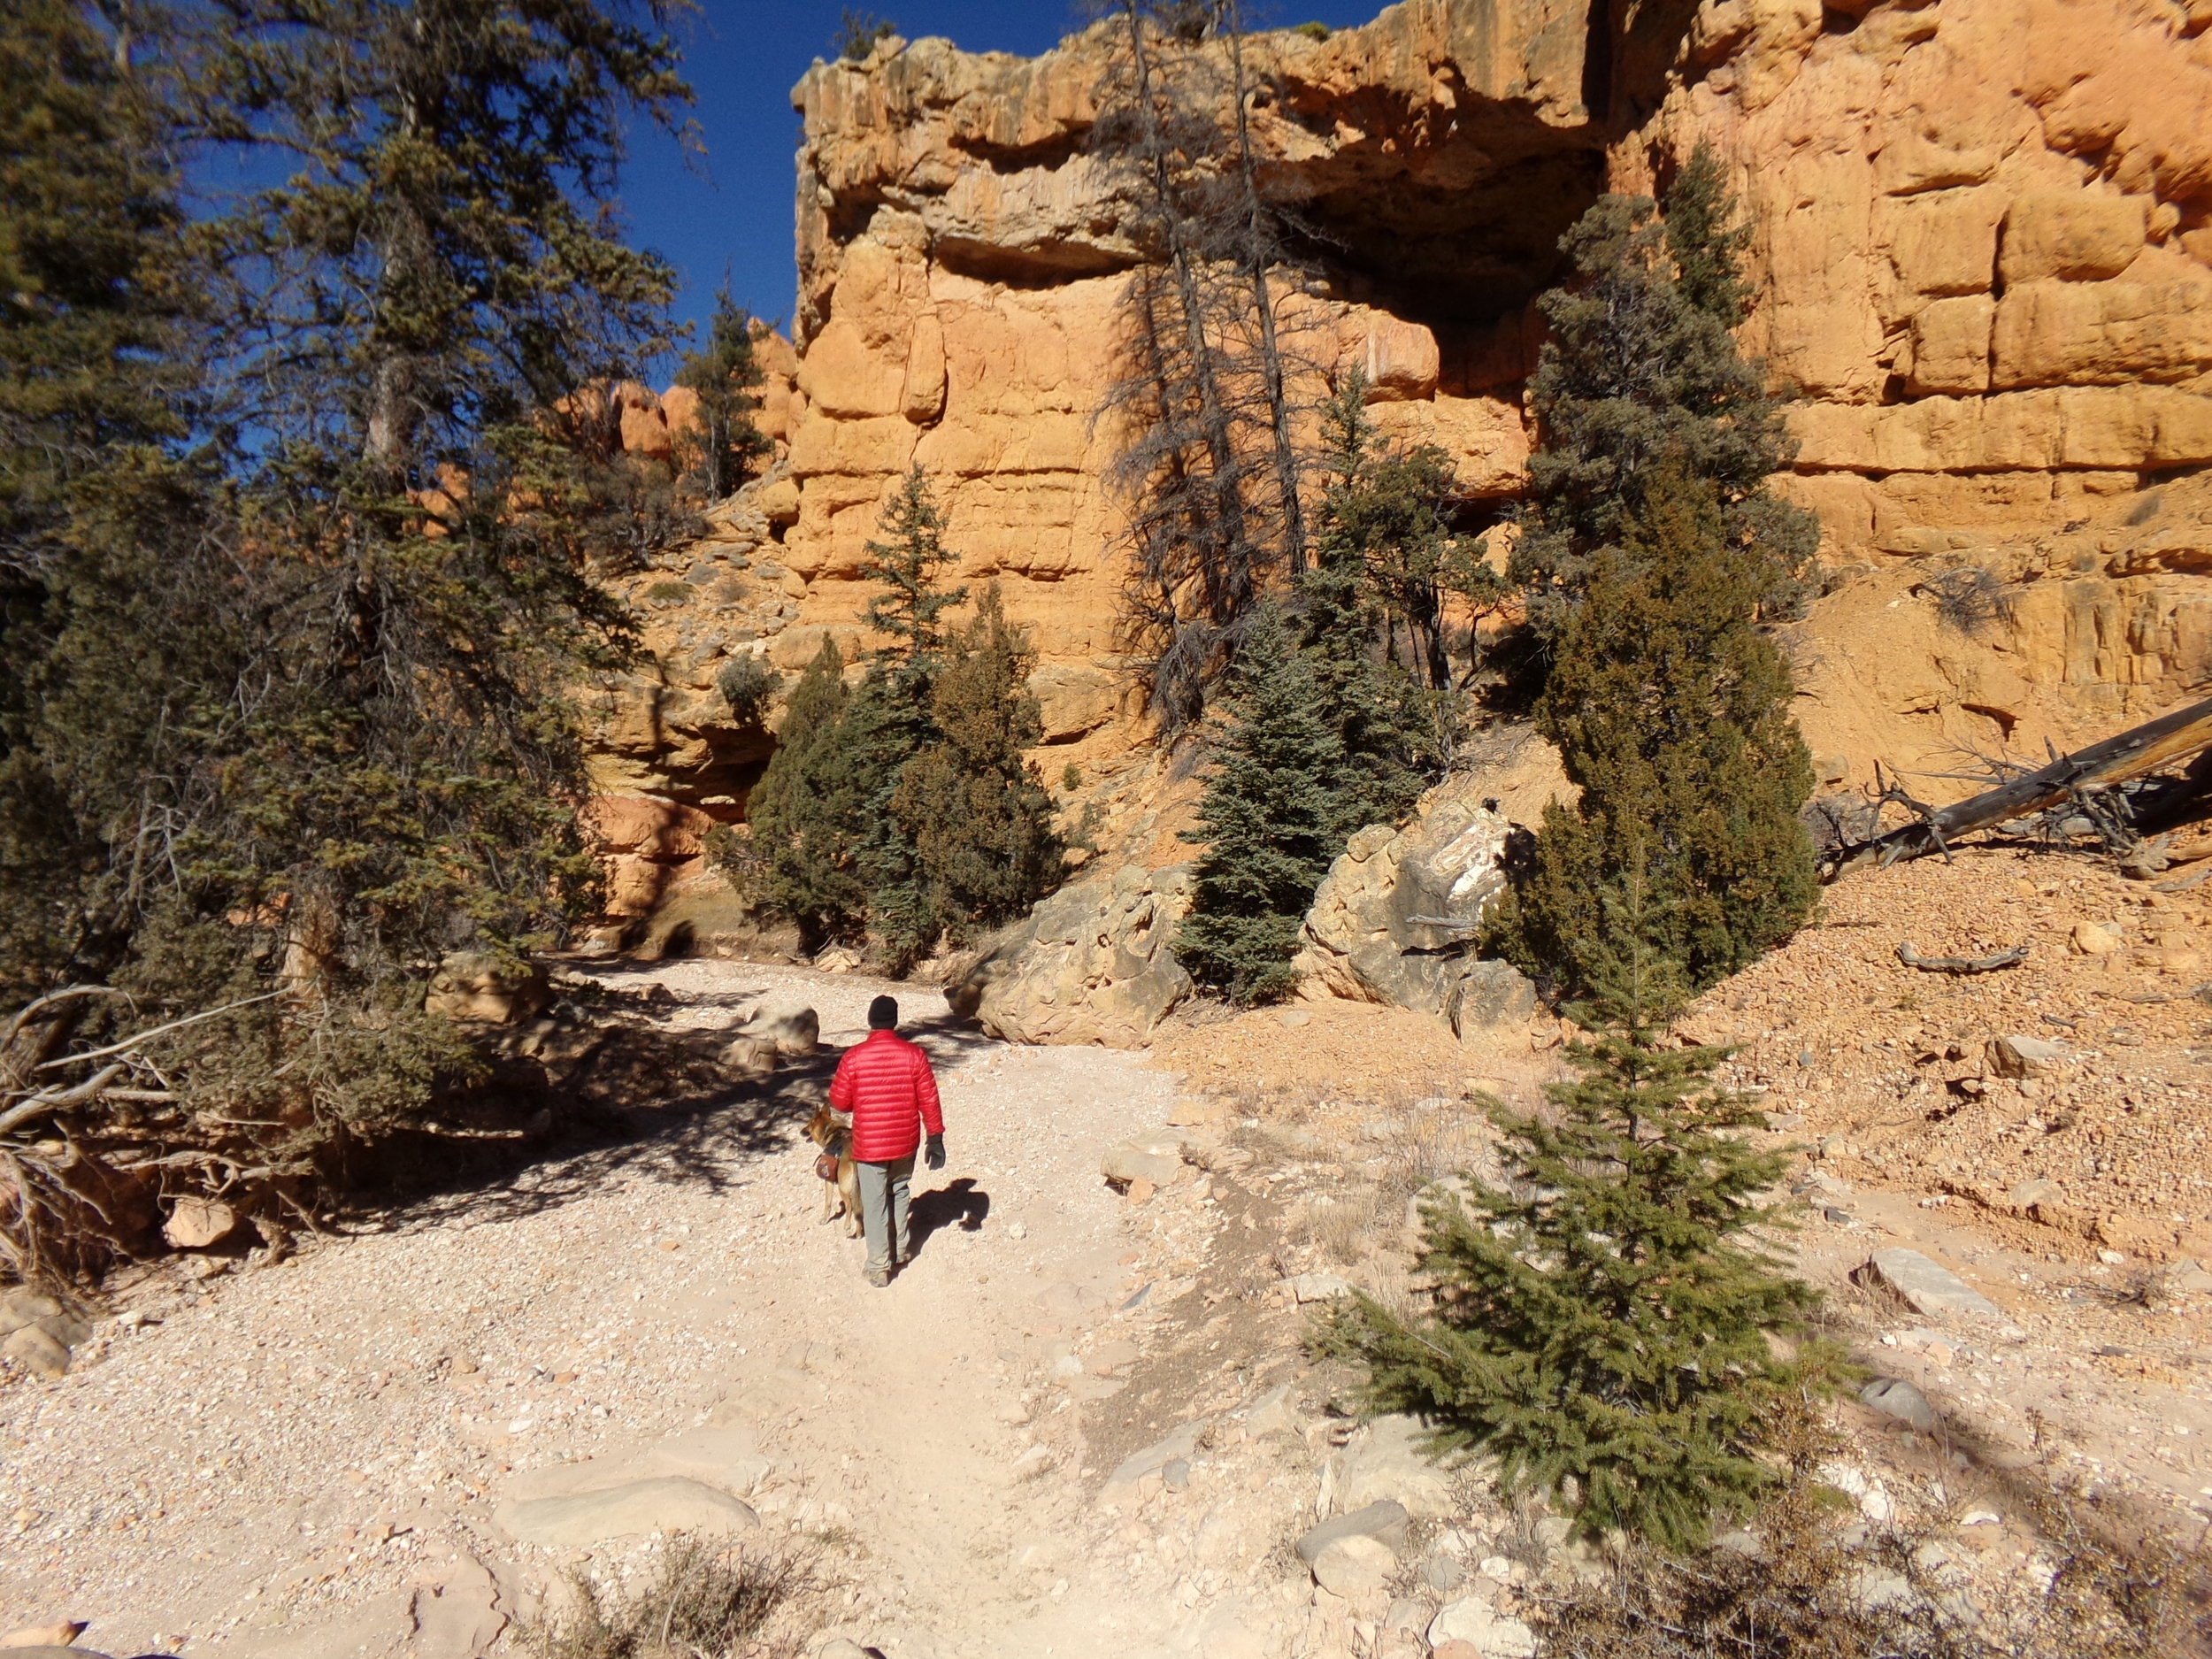 Losee Canyon Trail - a nice, easy walk through beautiful canyon country.